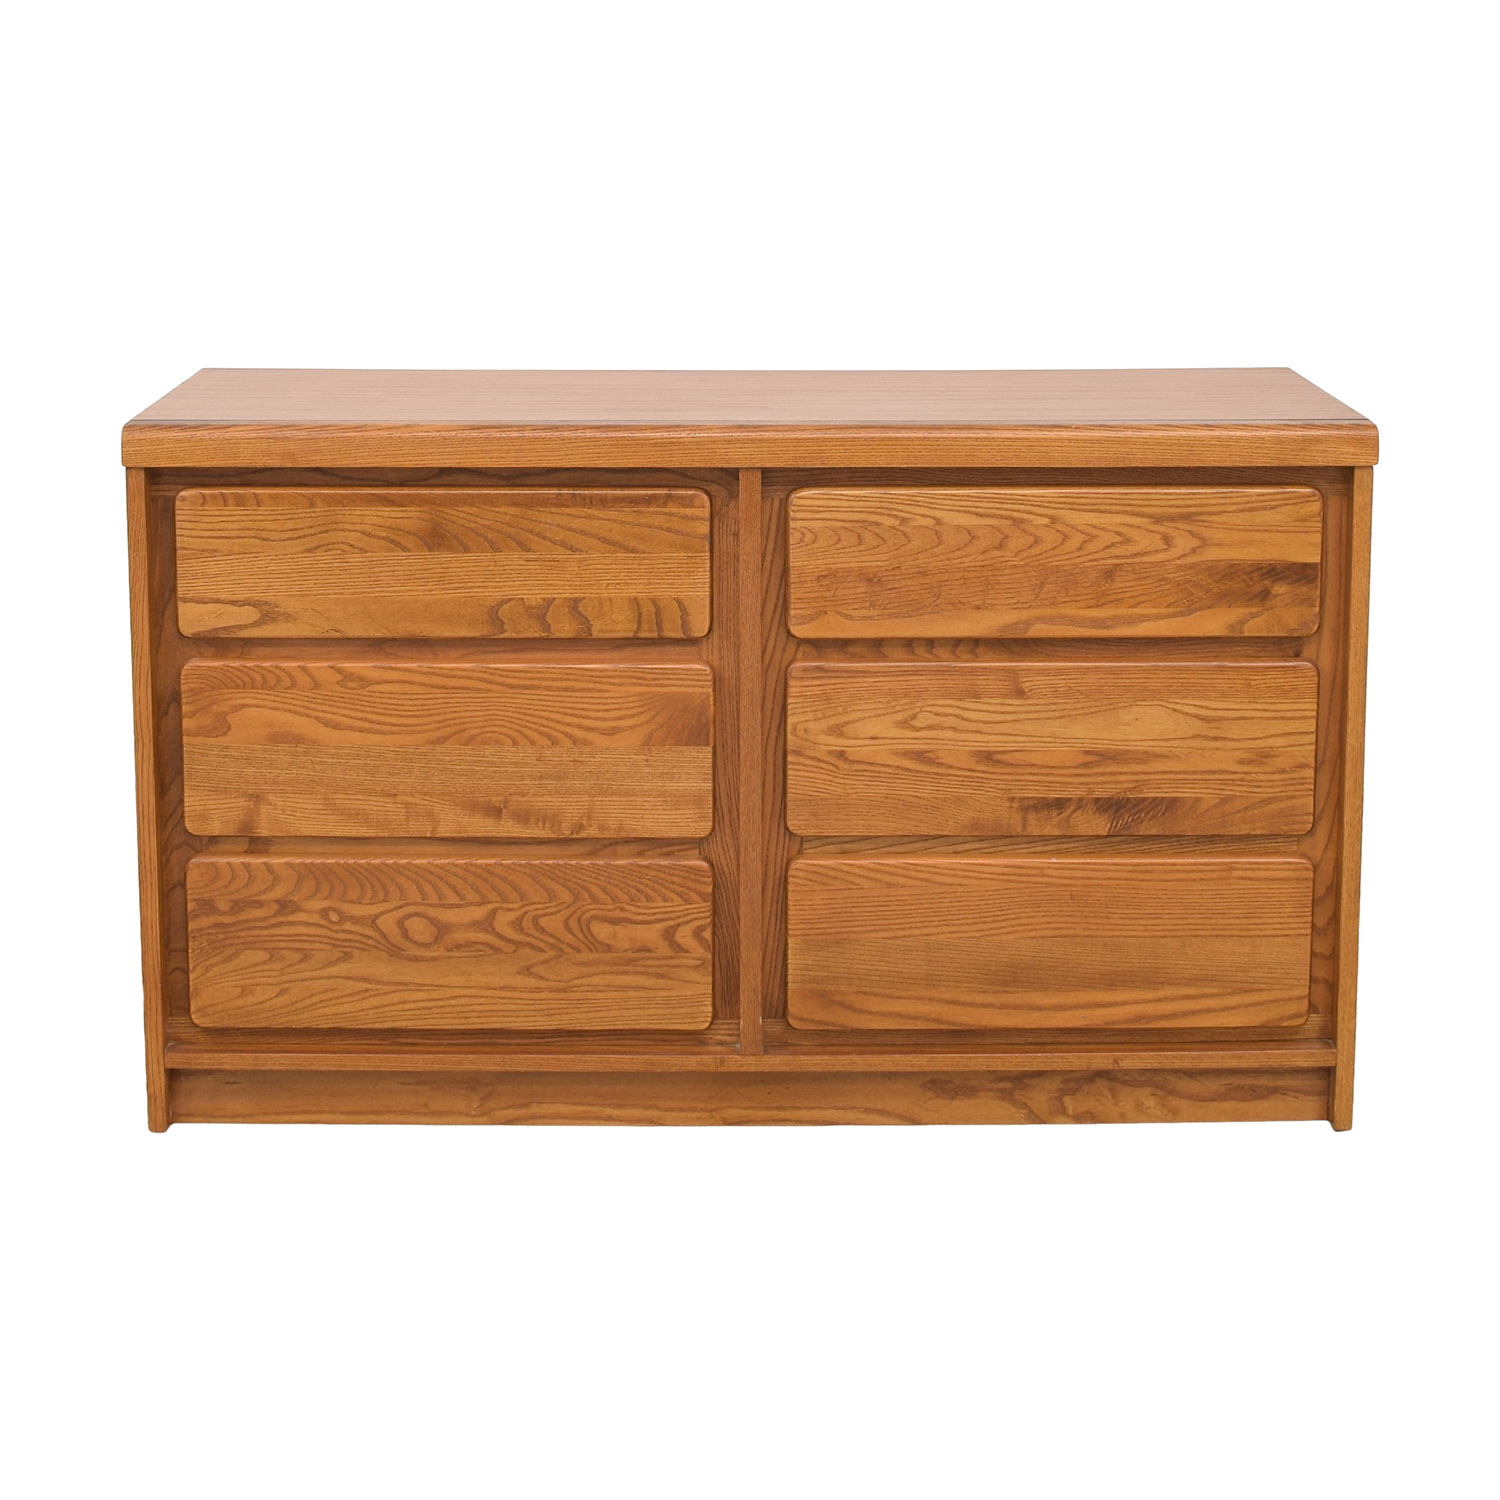 Childcraft Childcraft Double Dresser used